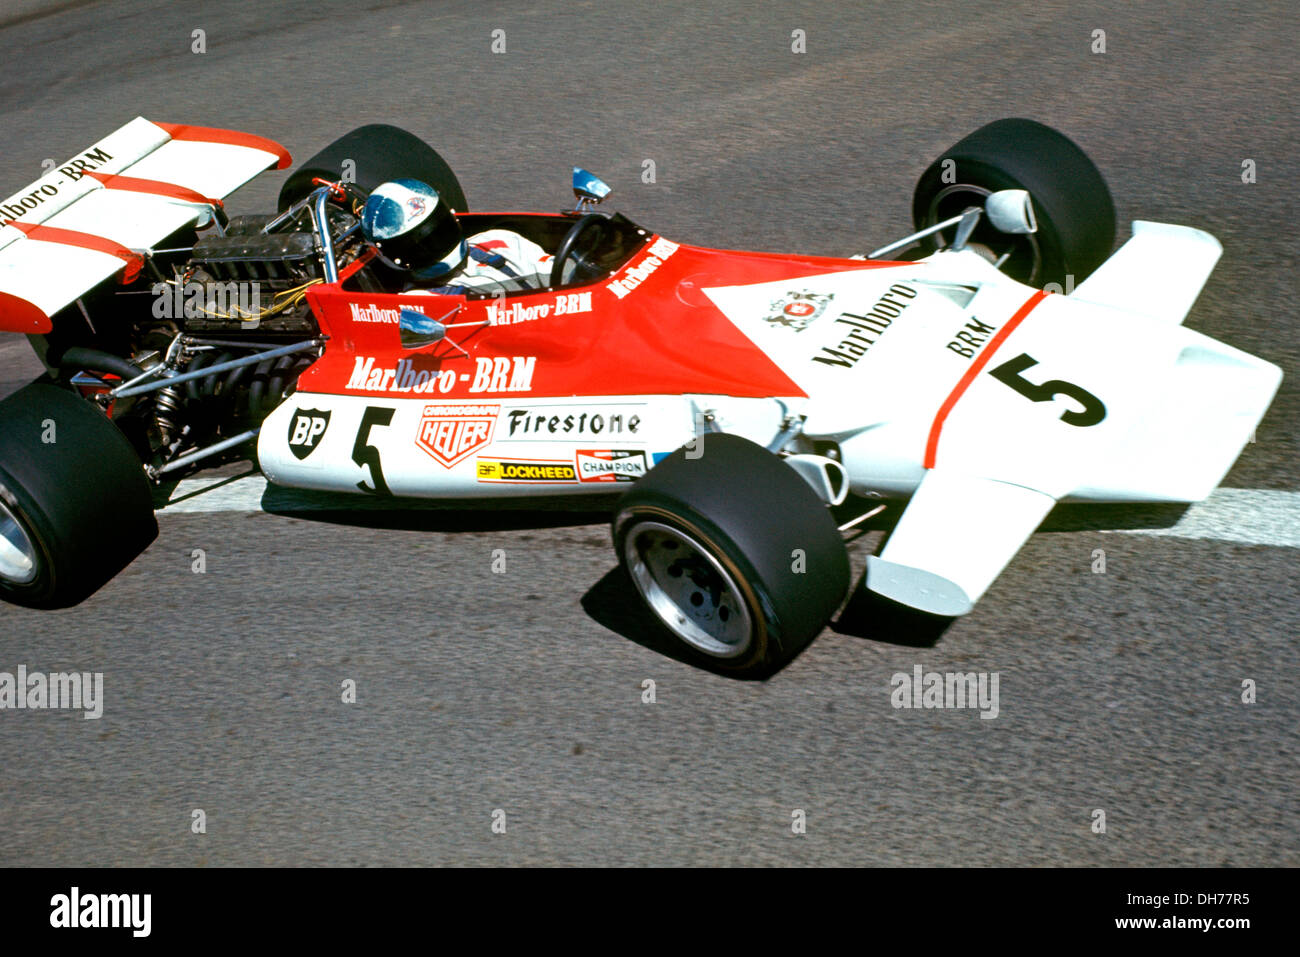 jean pierre beltoise in the brm p160b finishing 15th at the french gp stock photo 62240057 alamy. Black Bedroom Furniture Sets. Home Design Ideas